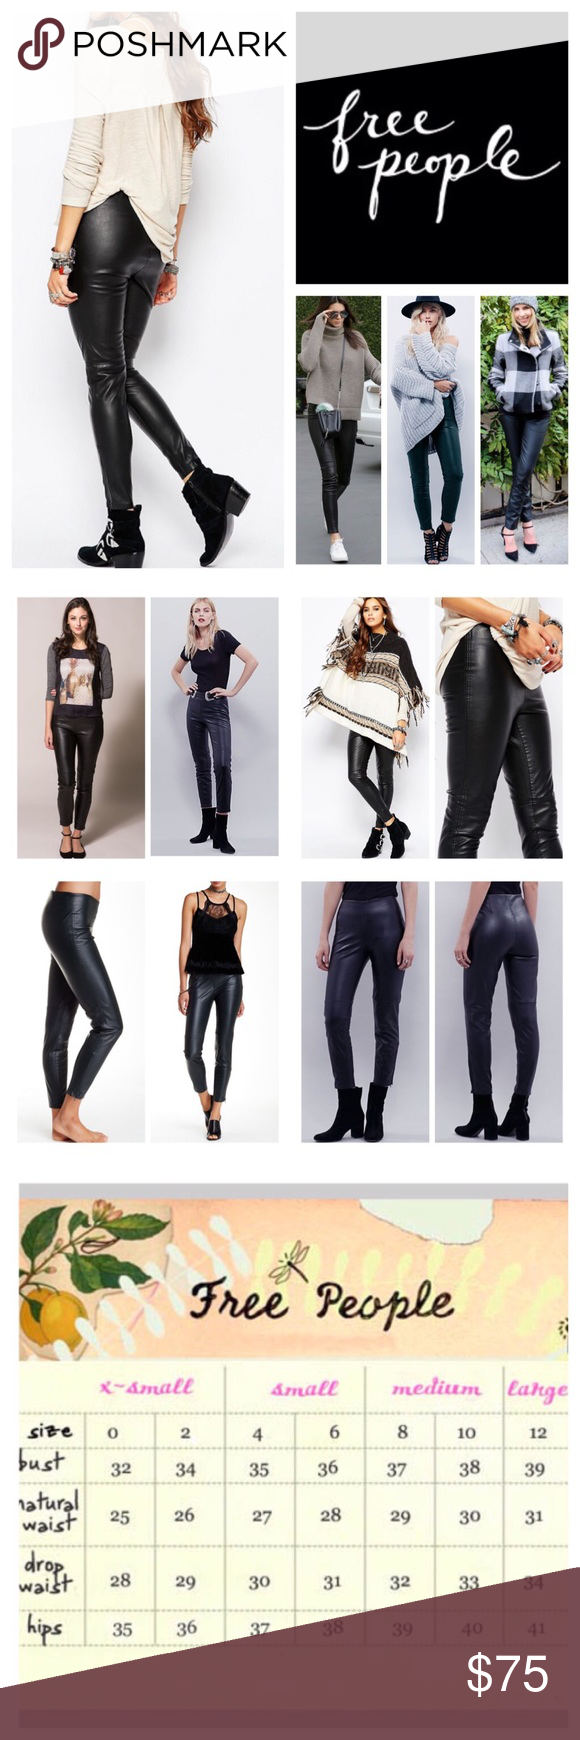 "Free People Black Vegan Leather Leggings.  NWT. Free People Black Vegan Leather Leggings, 100% polyurethane, machine washable, 26"" elactercized waist which stretches up to 30"" 8.5"" front rise, 14"" back rise, 27"" inseam, 10"" leg opening, 5.5"" side ankle zip, authentic looking vegan leather leggings featuring a flat front and back pockets, elactercized waist, concealed side zip closure, seam detail, skinny fit,mmeasurements are approx.  NO TRADES Free People Pants Leggings"